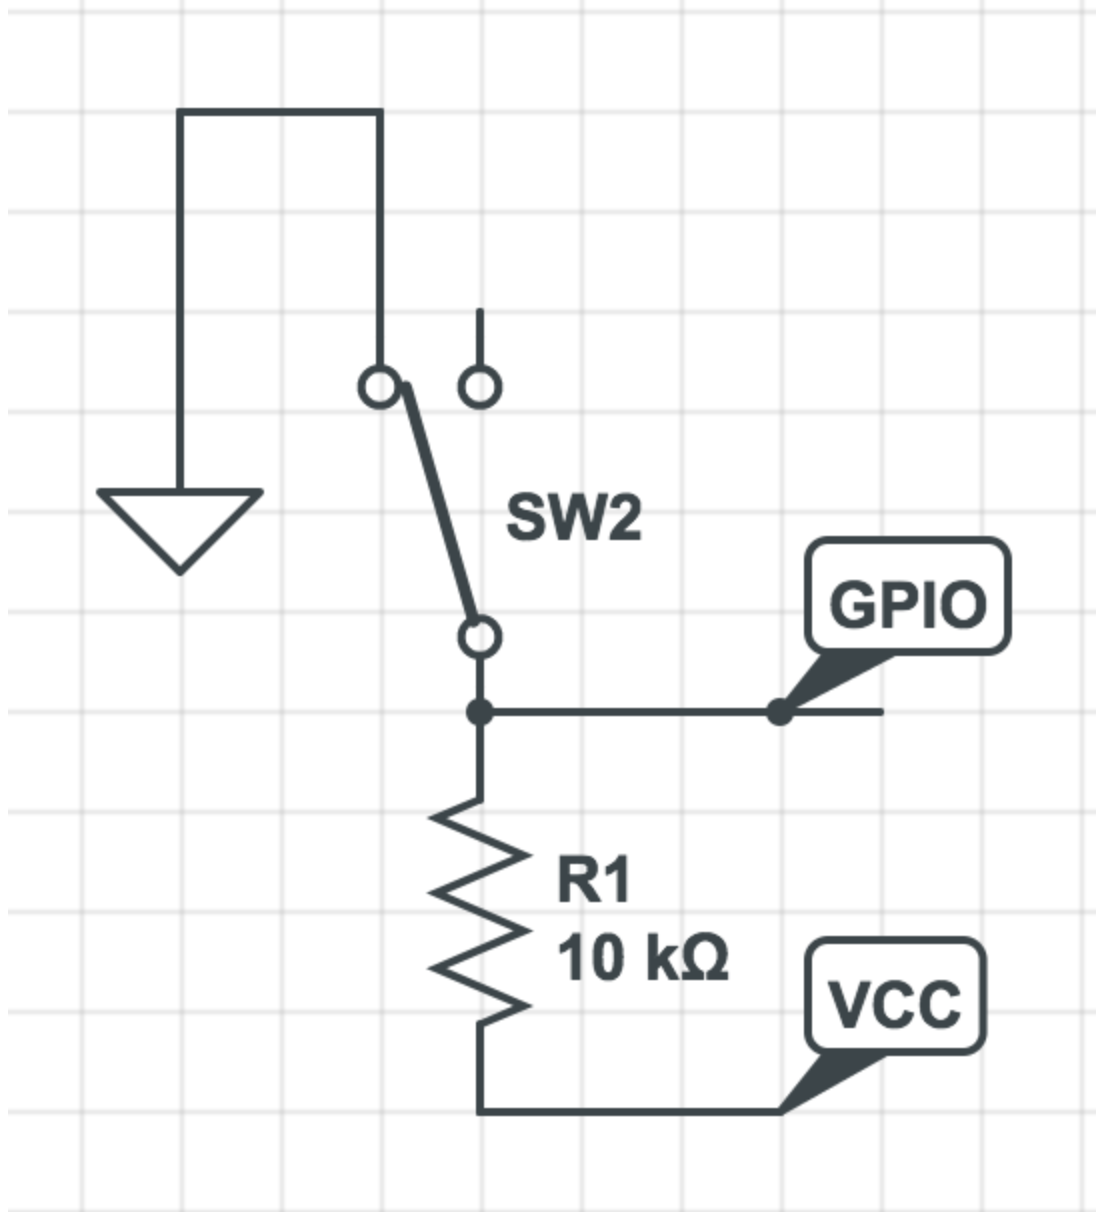 Surprising Switches Wiring On Off Switch With Resistor To Soc Electrical Letkol Mohammedshrine Wiring Cloud Letkolmohammedshrineorg